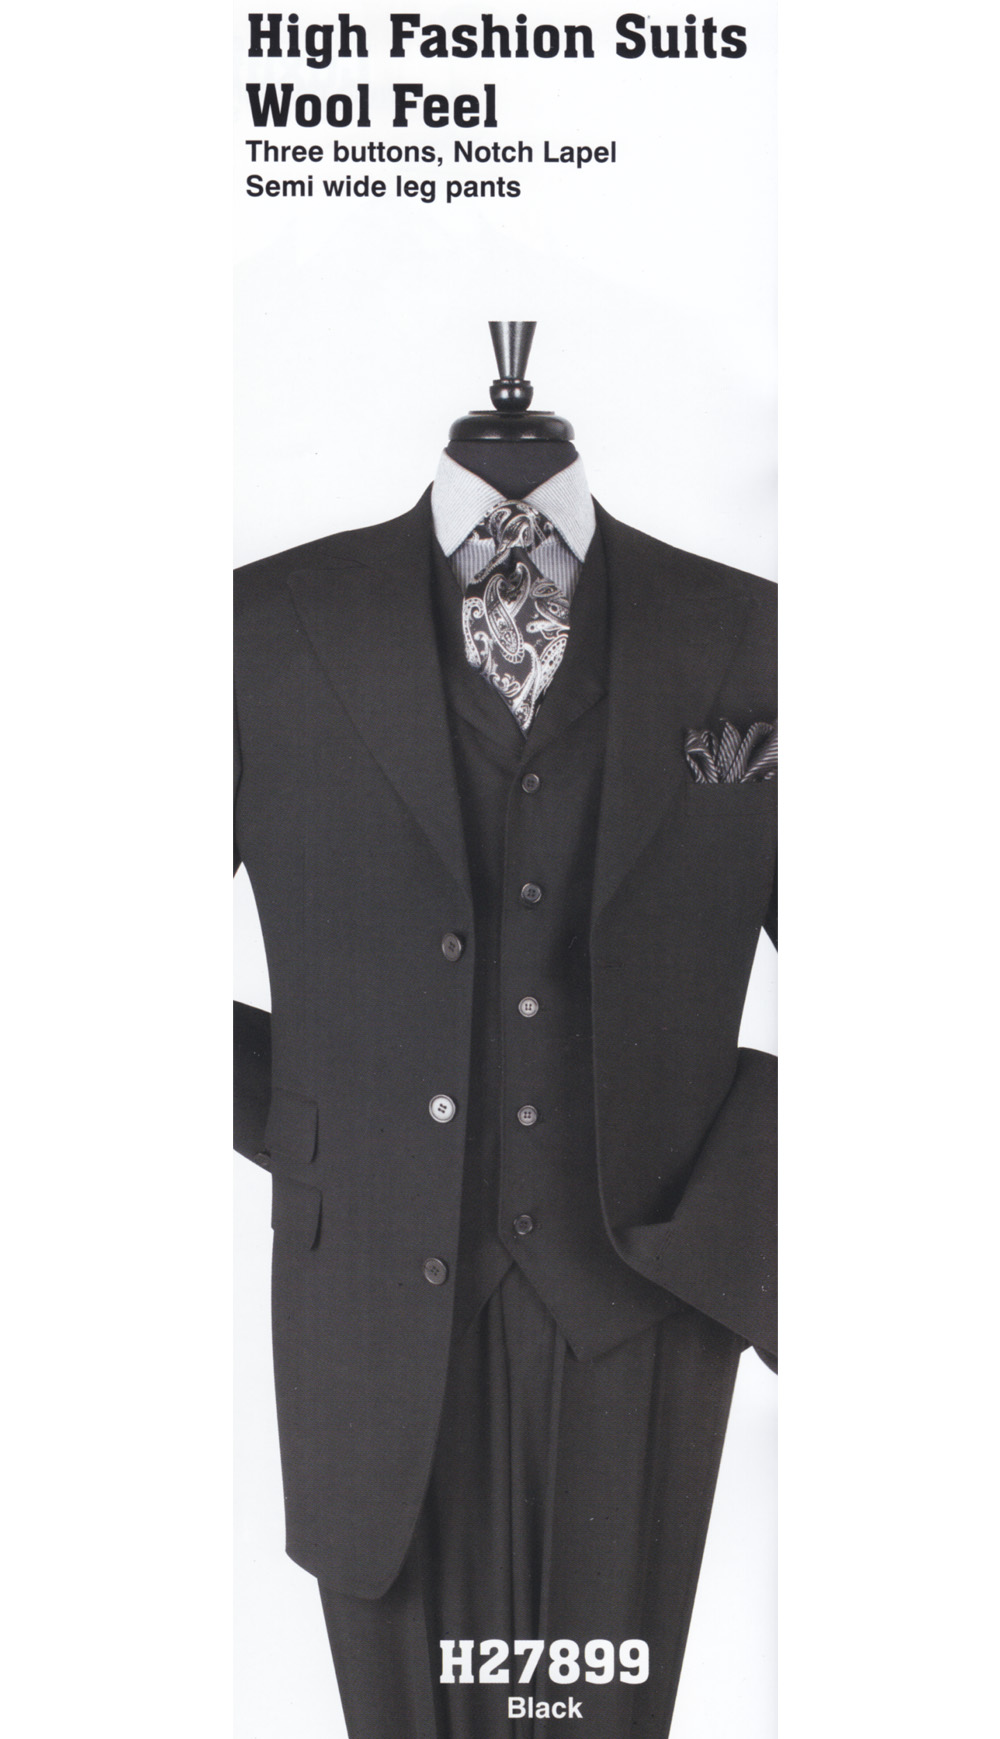 High Fashion Men Suits H27899